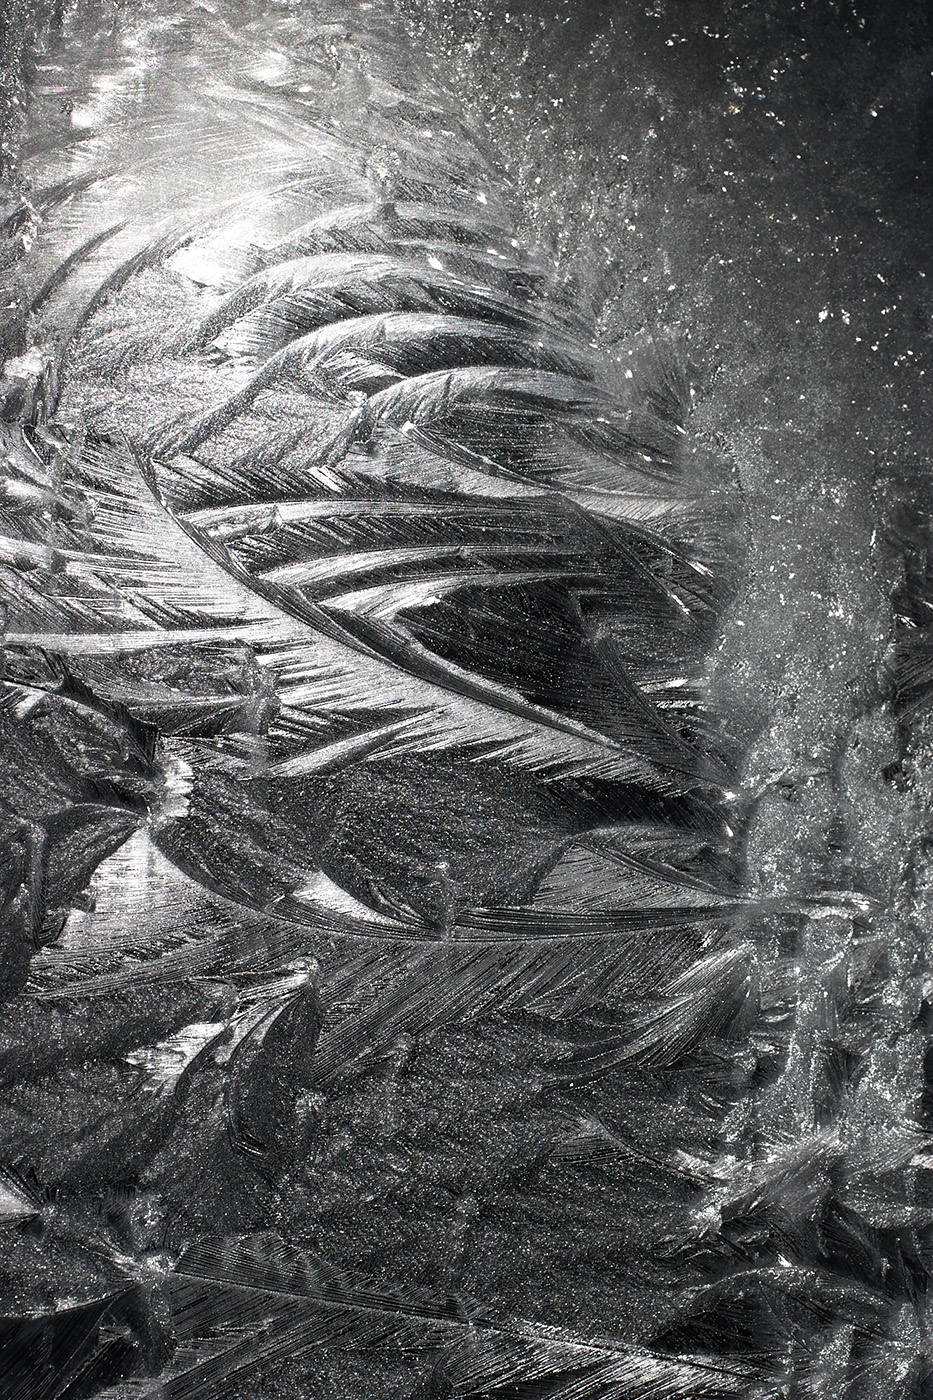 Ice Crystals on Window, Hamilton, New York